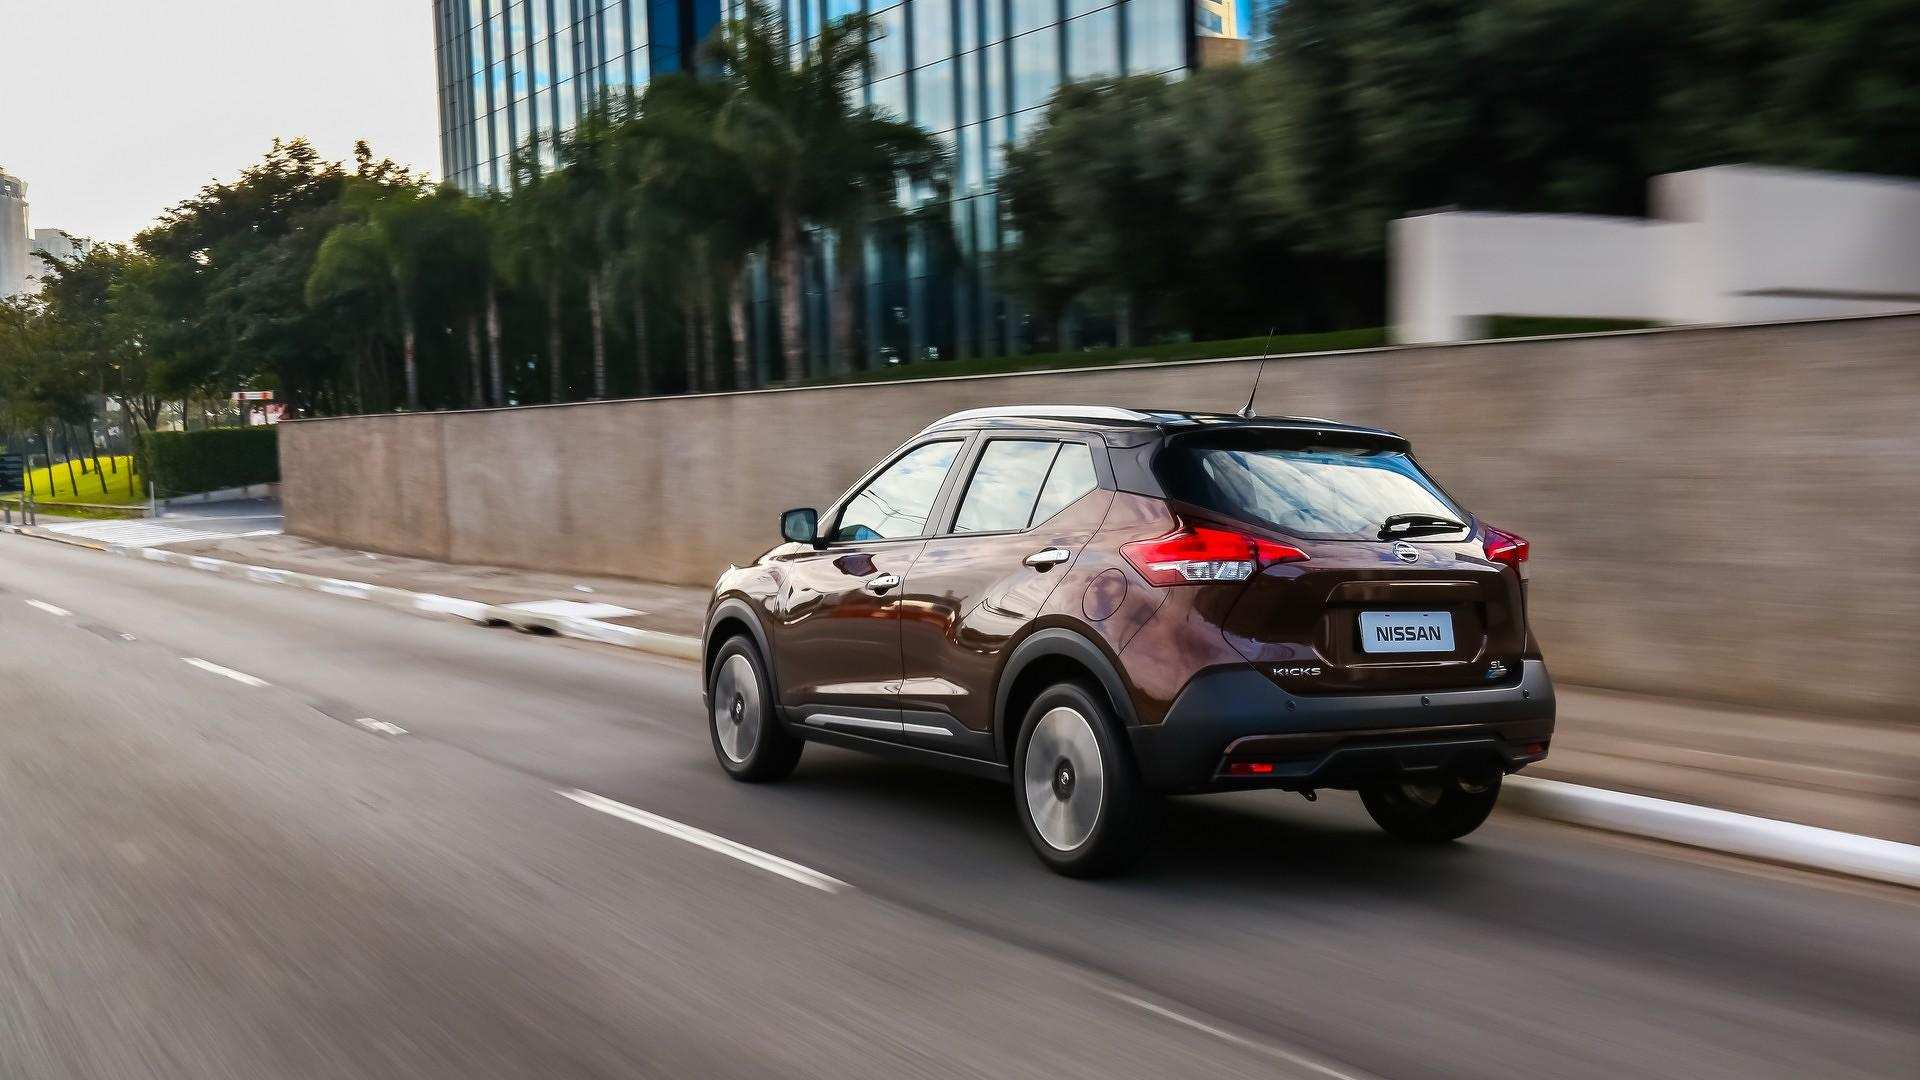 70 New Nissan Kicks 2020 Mudanças Rumors with Nissan Kicks 2020 Mudanças